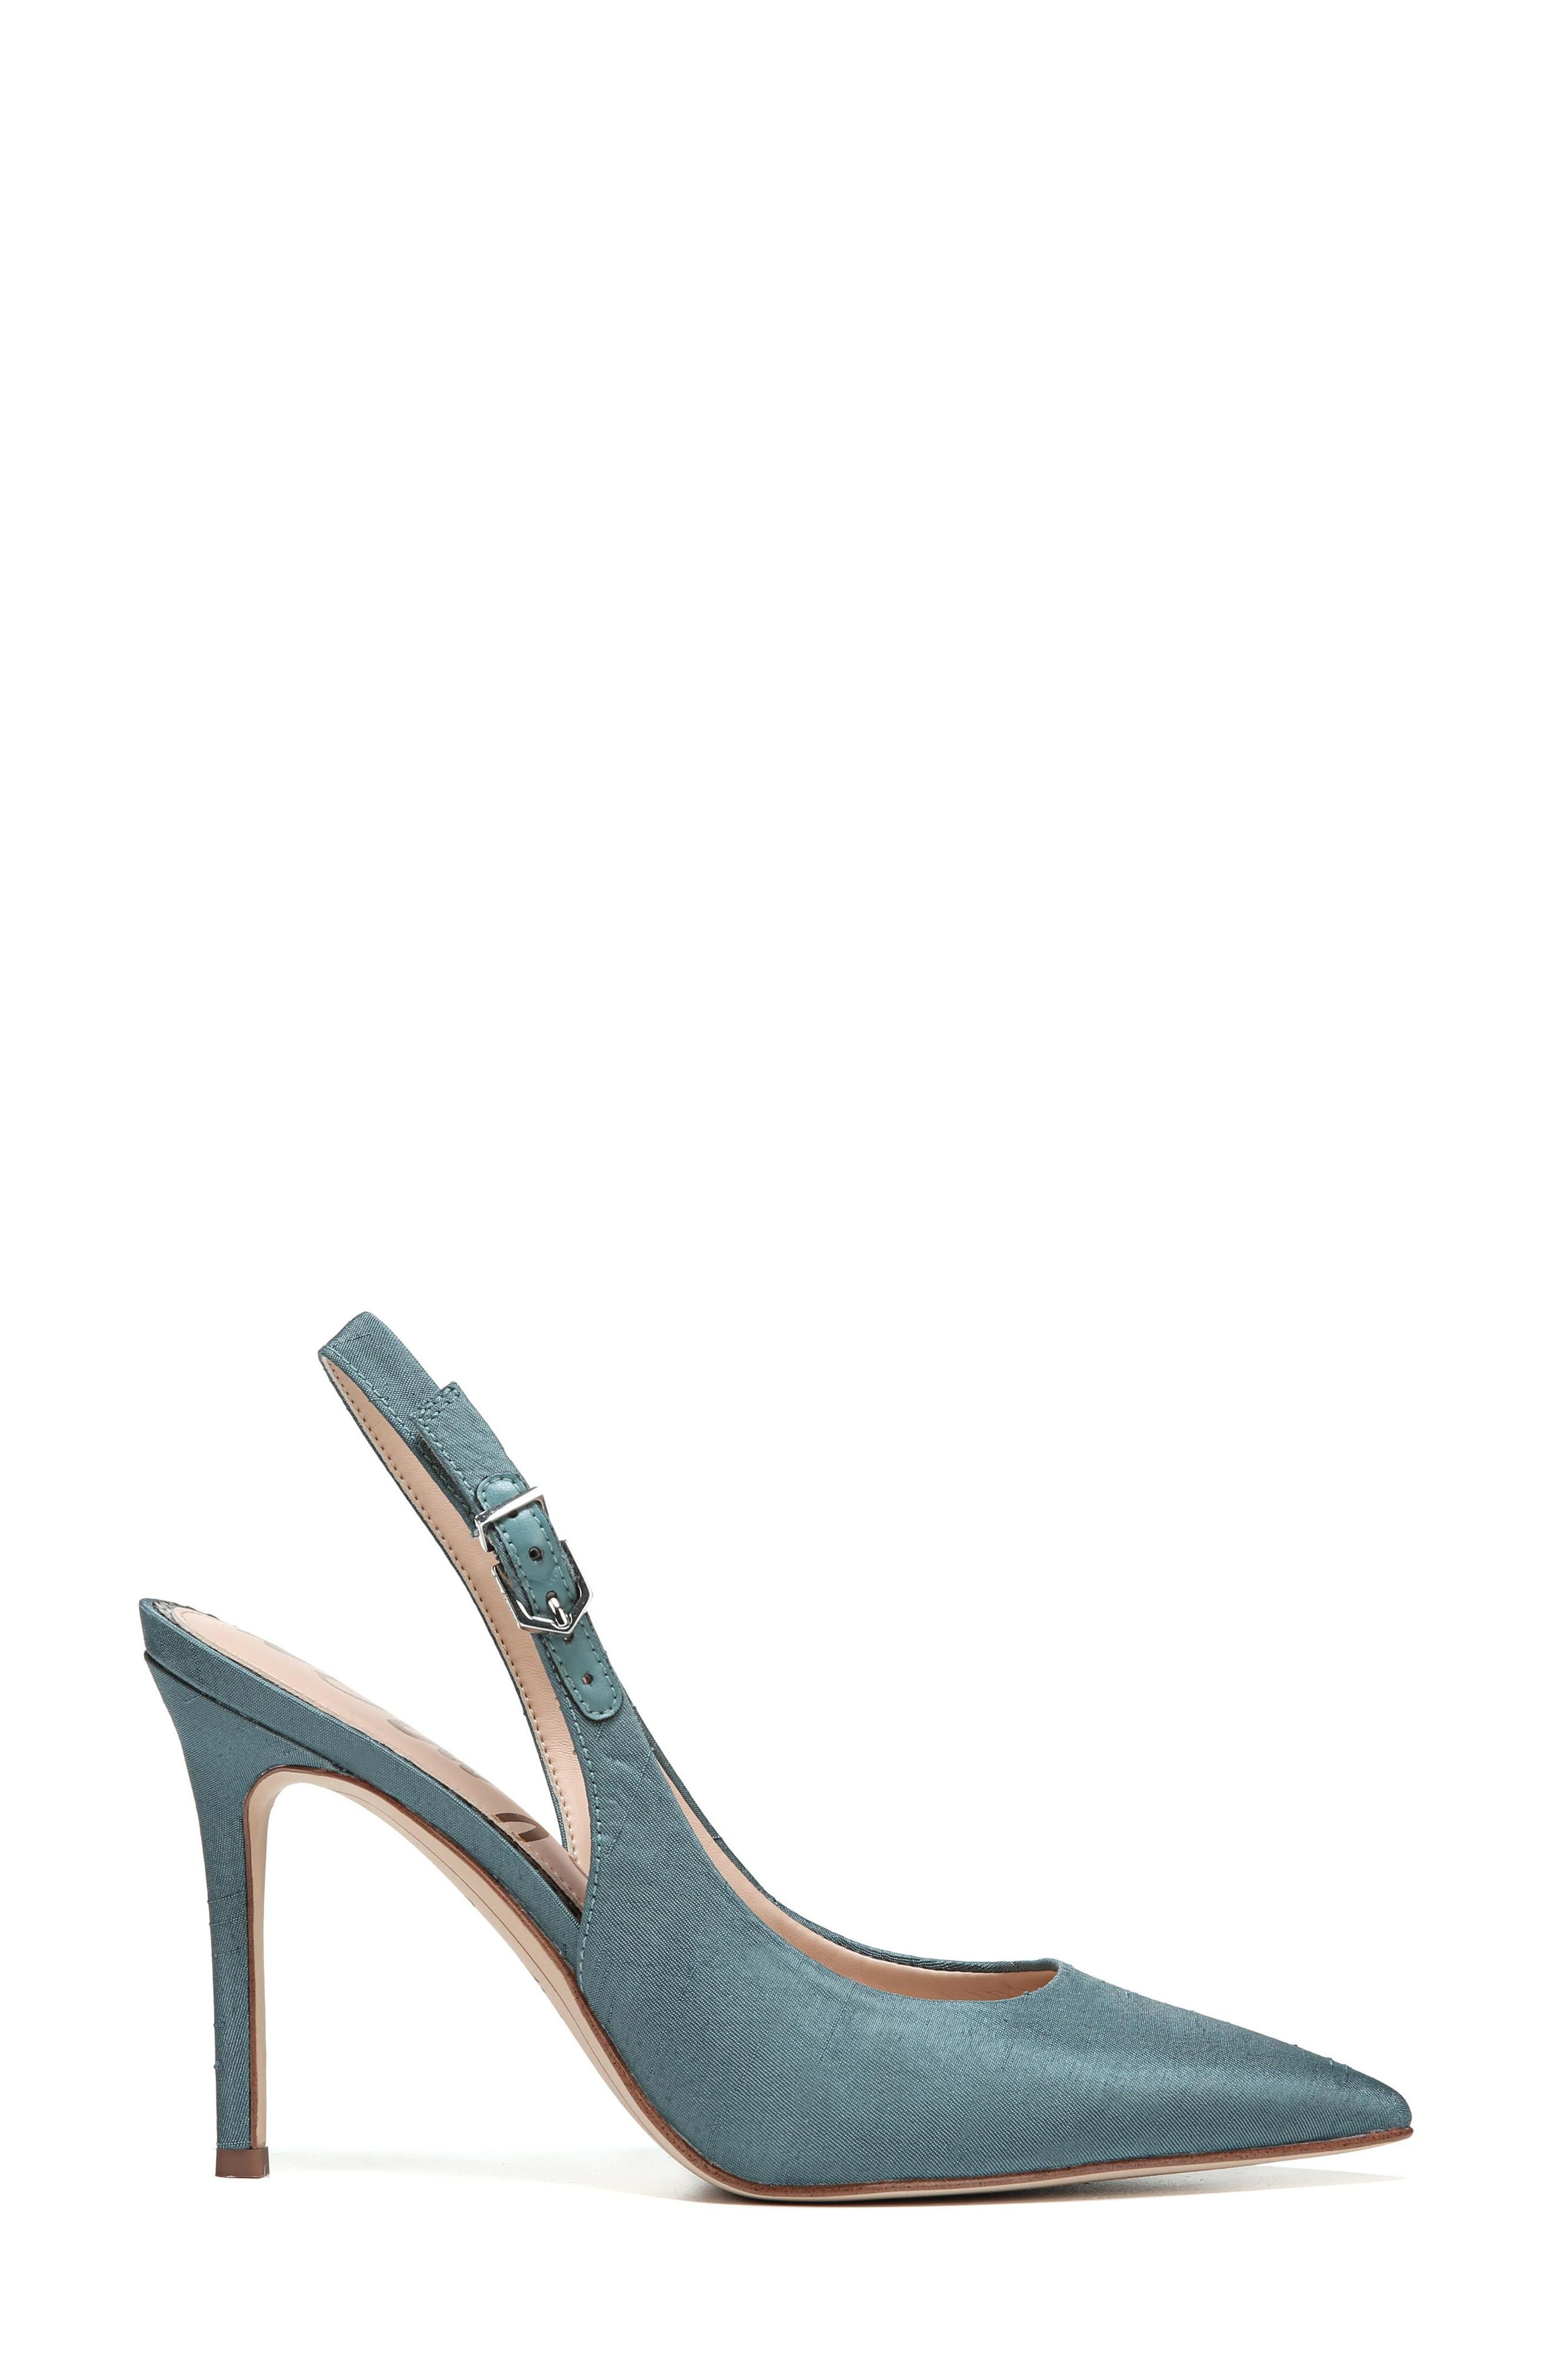 Hastings Slingback Pump,                             Alternate thumbnail 3, color,                             Blue Shadow